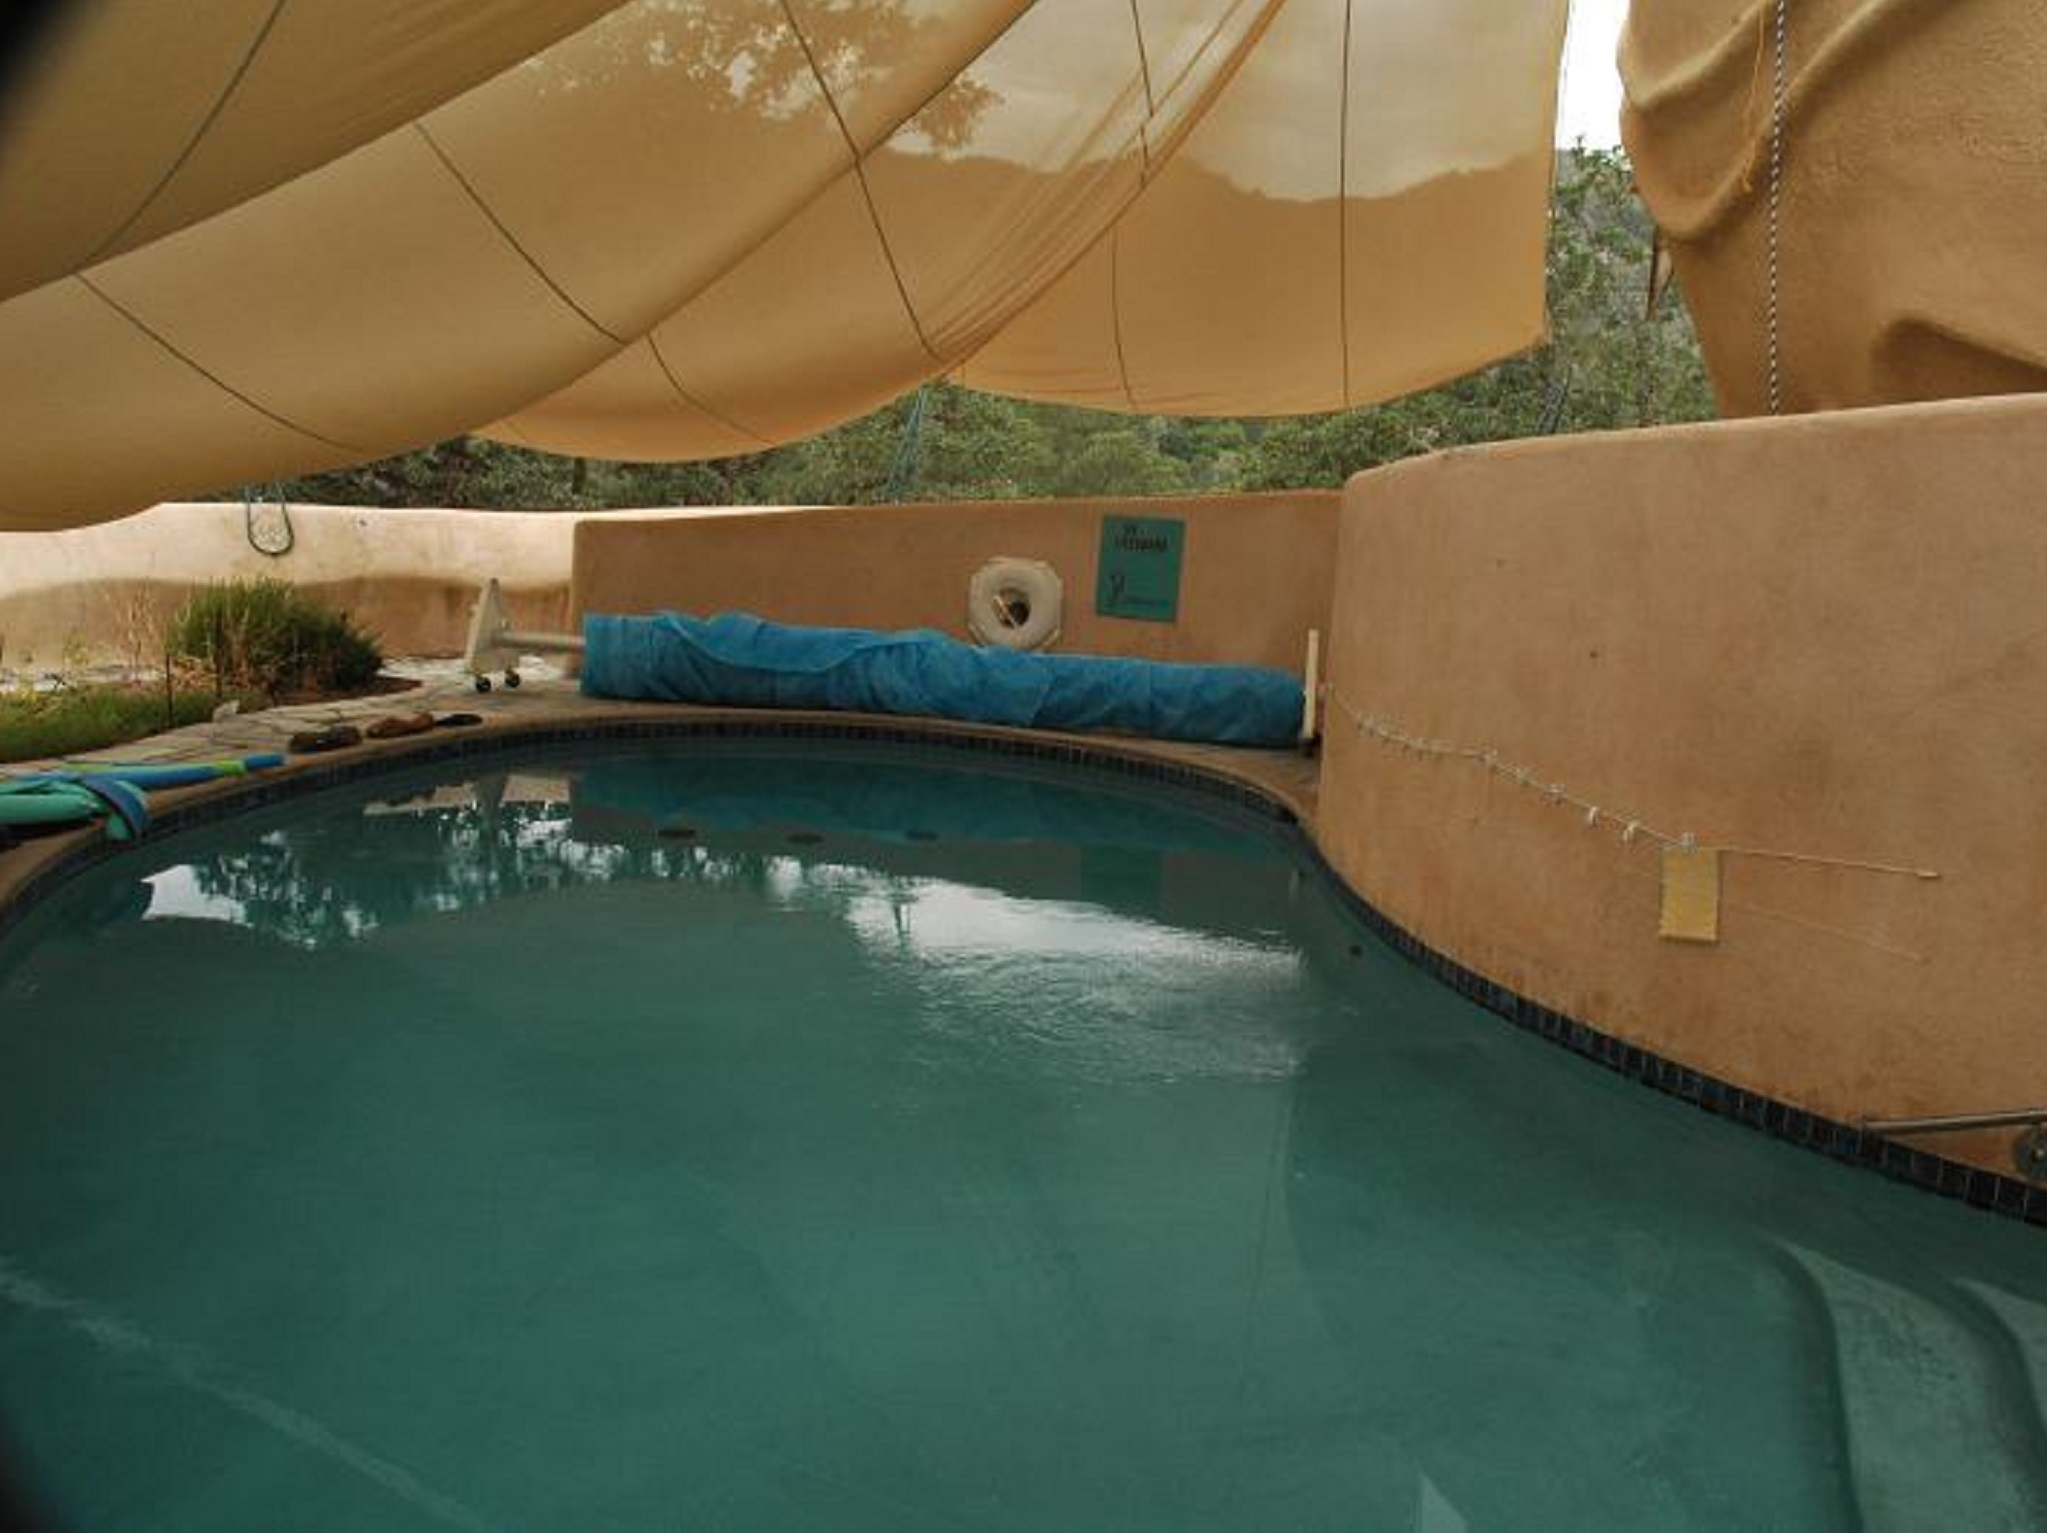 A pool with a tan tent over it